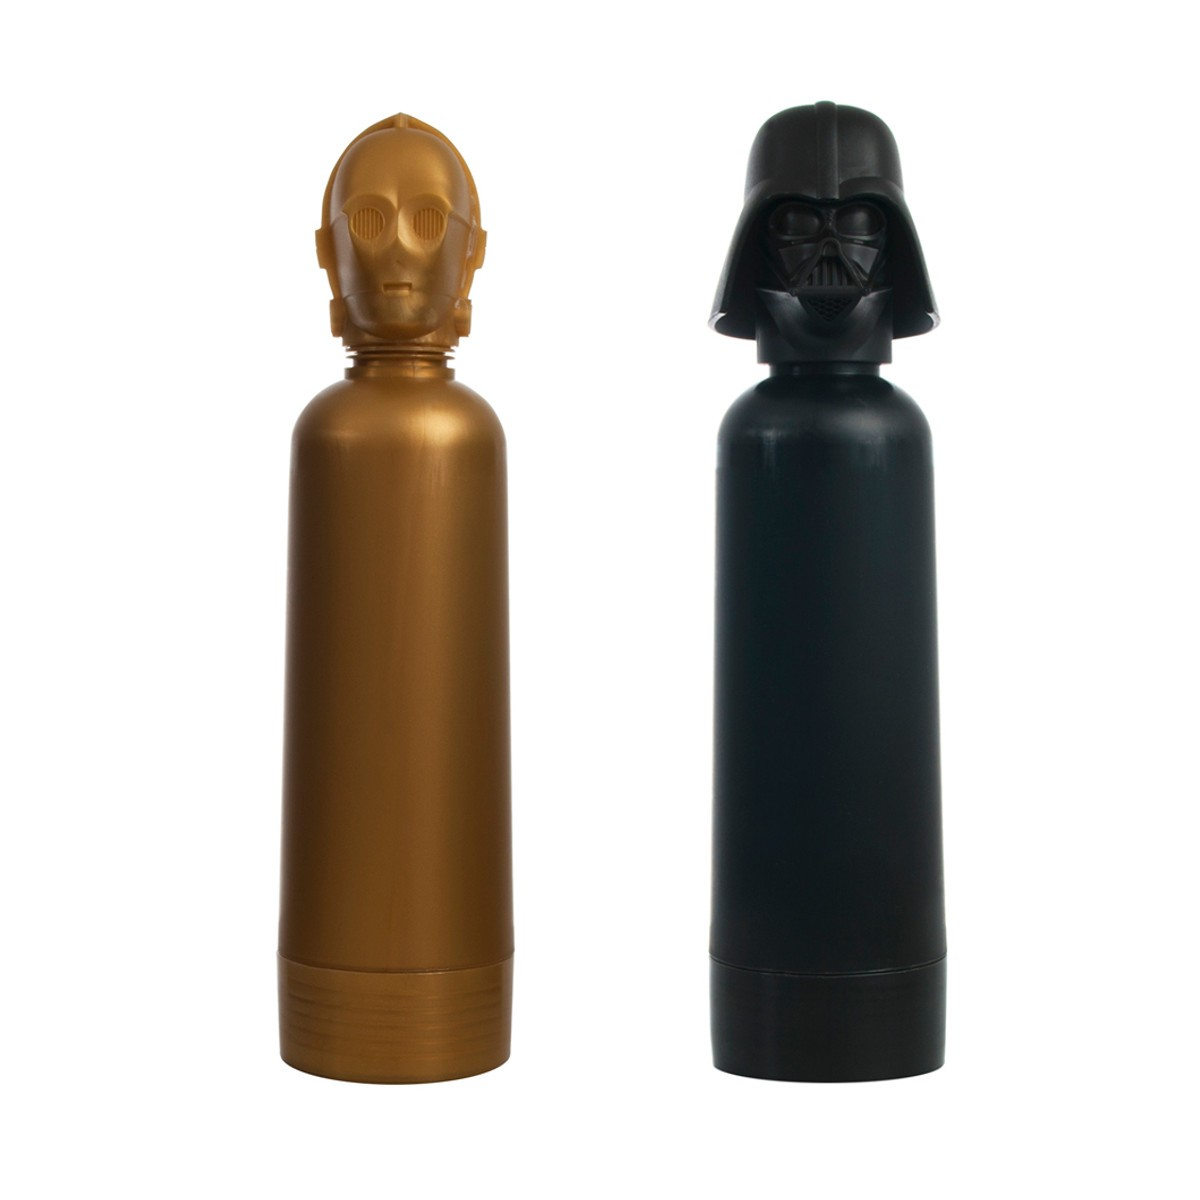 STAR WARS DRINKING BOTTLE